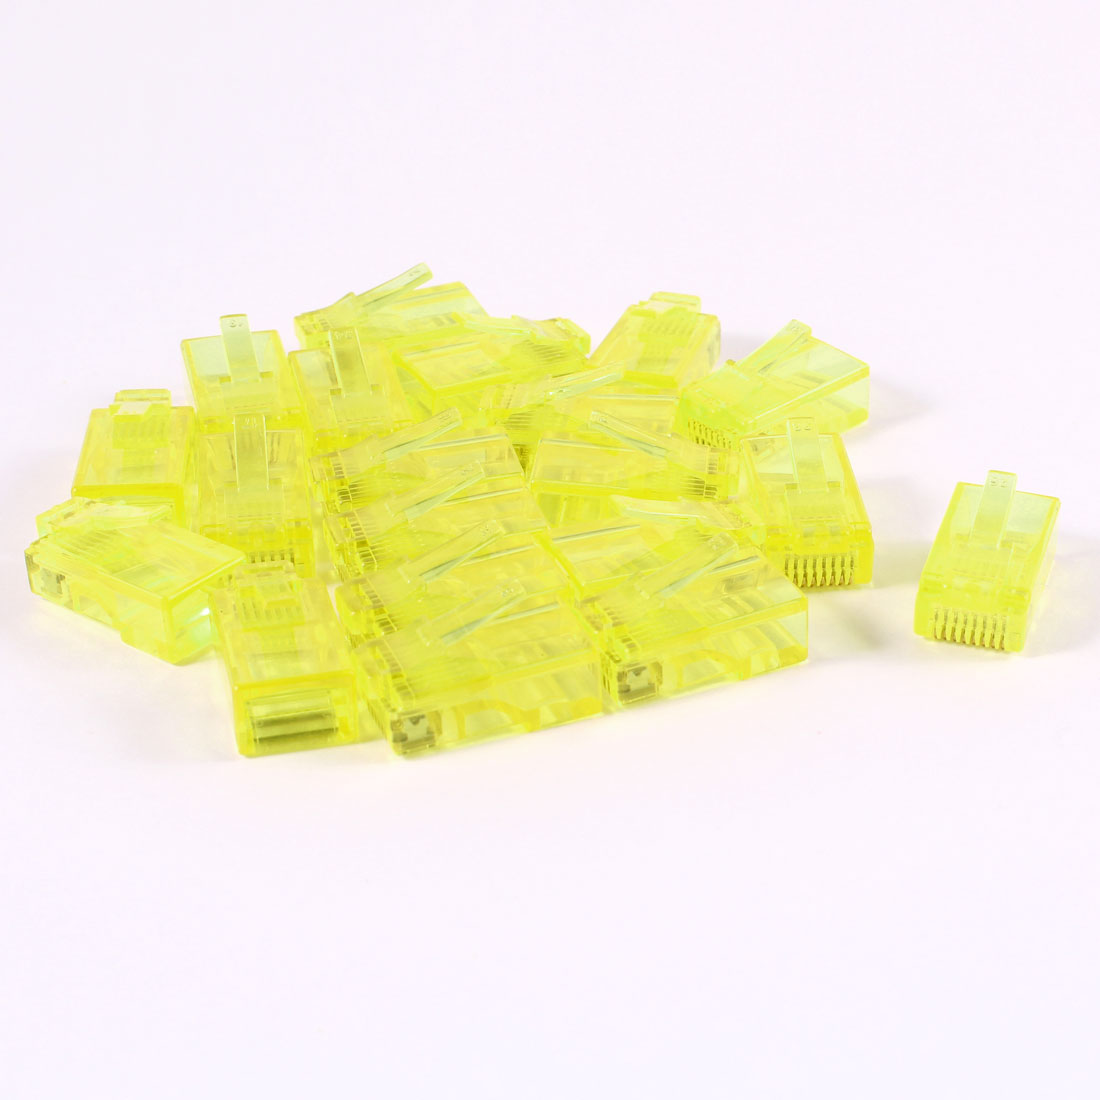 20 Pcs Yellow Plastic Shell RJ45 8P8C Modular Plug End Network Connector